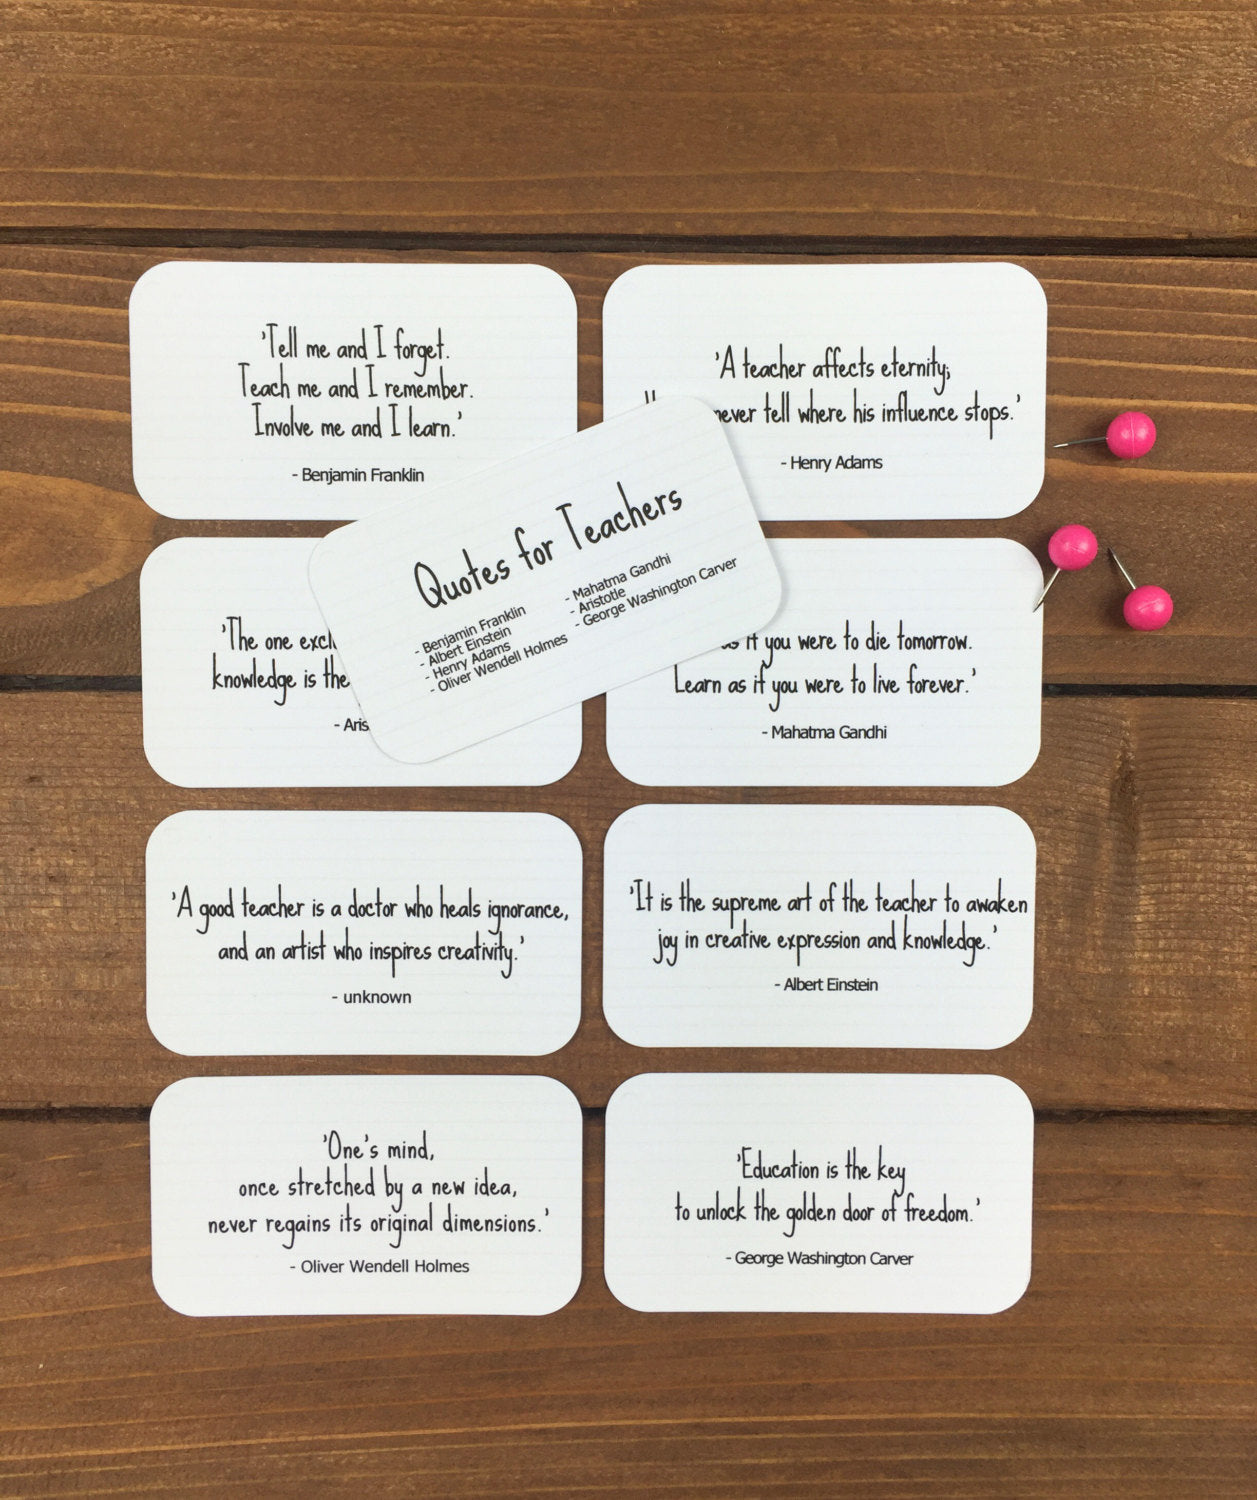 Teacher Quote Cards - Back to School Teacher Gift Ideas, Teacher Quotes, Teacher Gifts End of Year, Teacher Gift Basket - 8 Mini Quote Cards